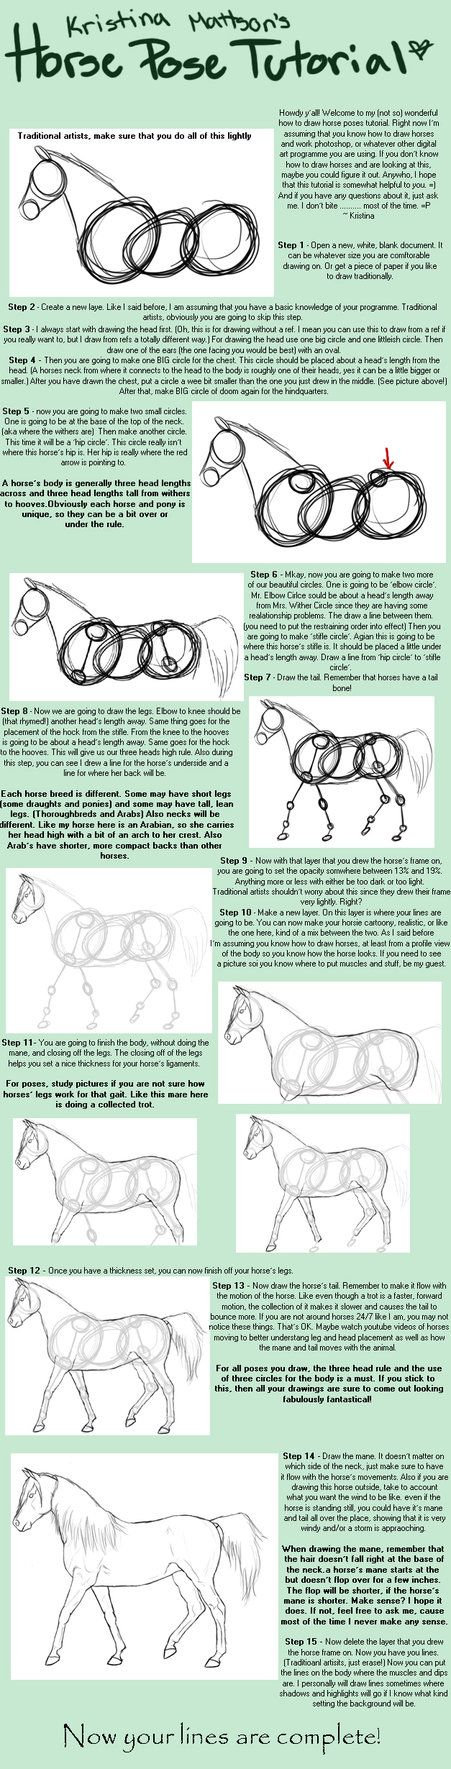 Horse Pose Tutorial by Abiadura on deviantART